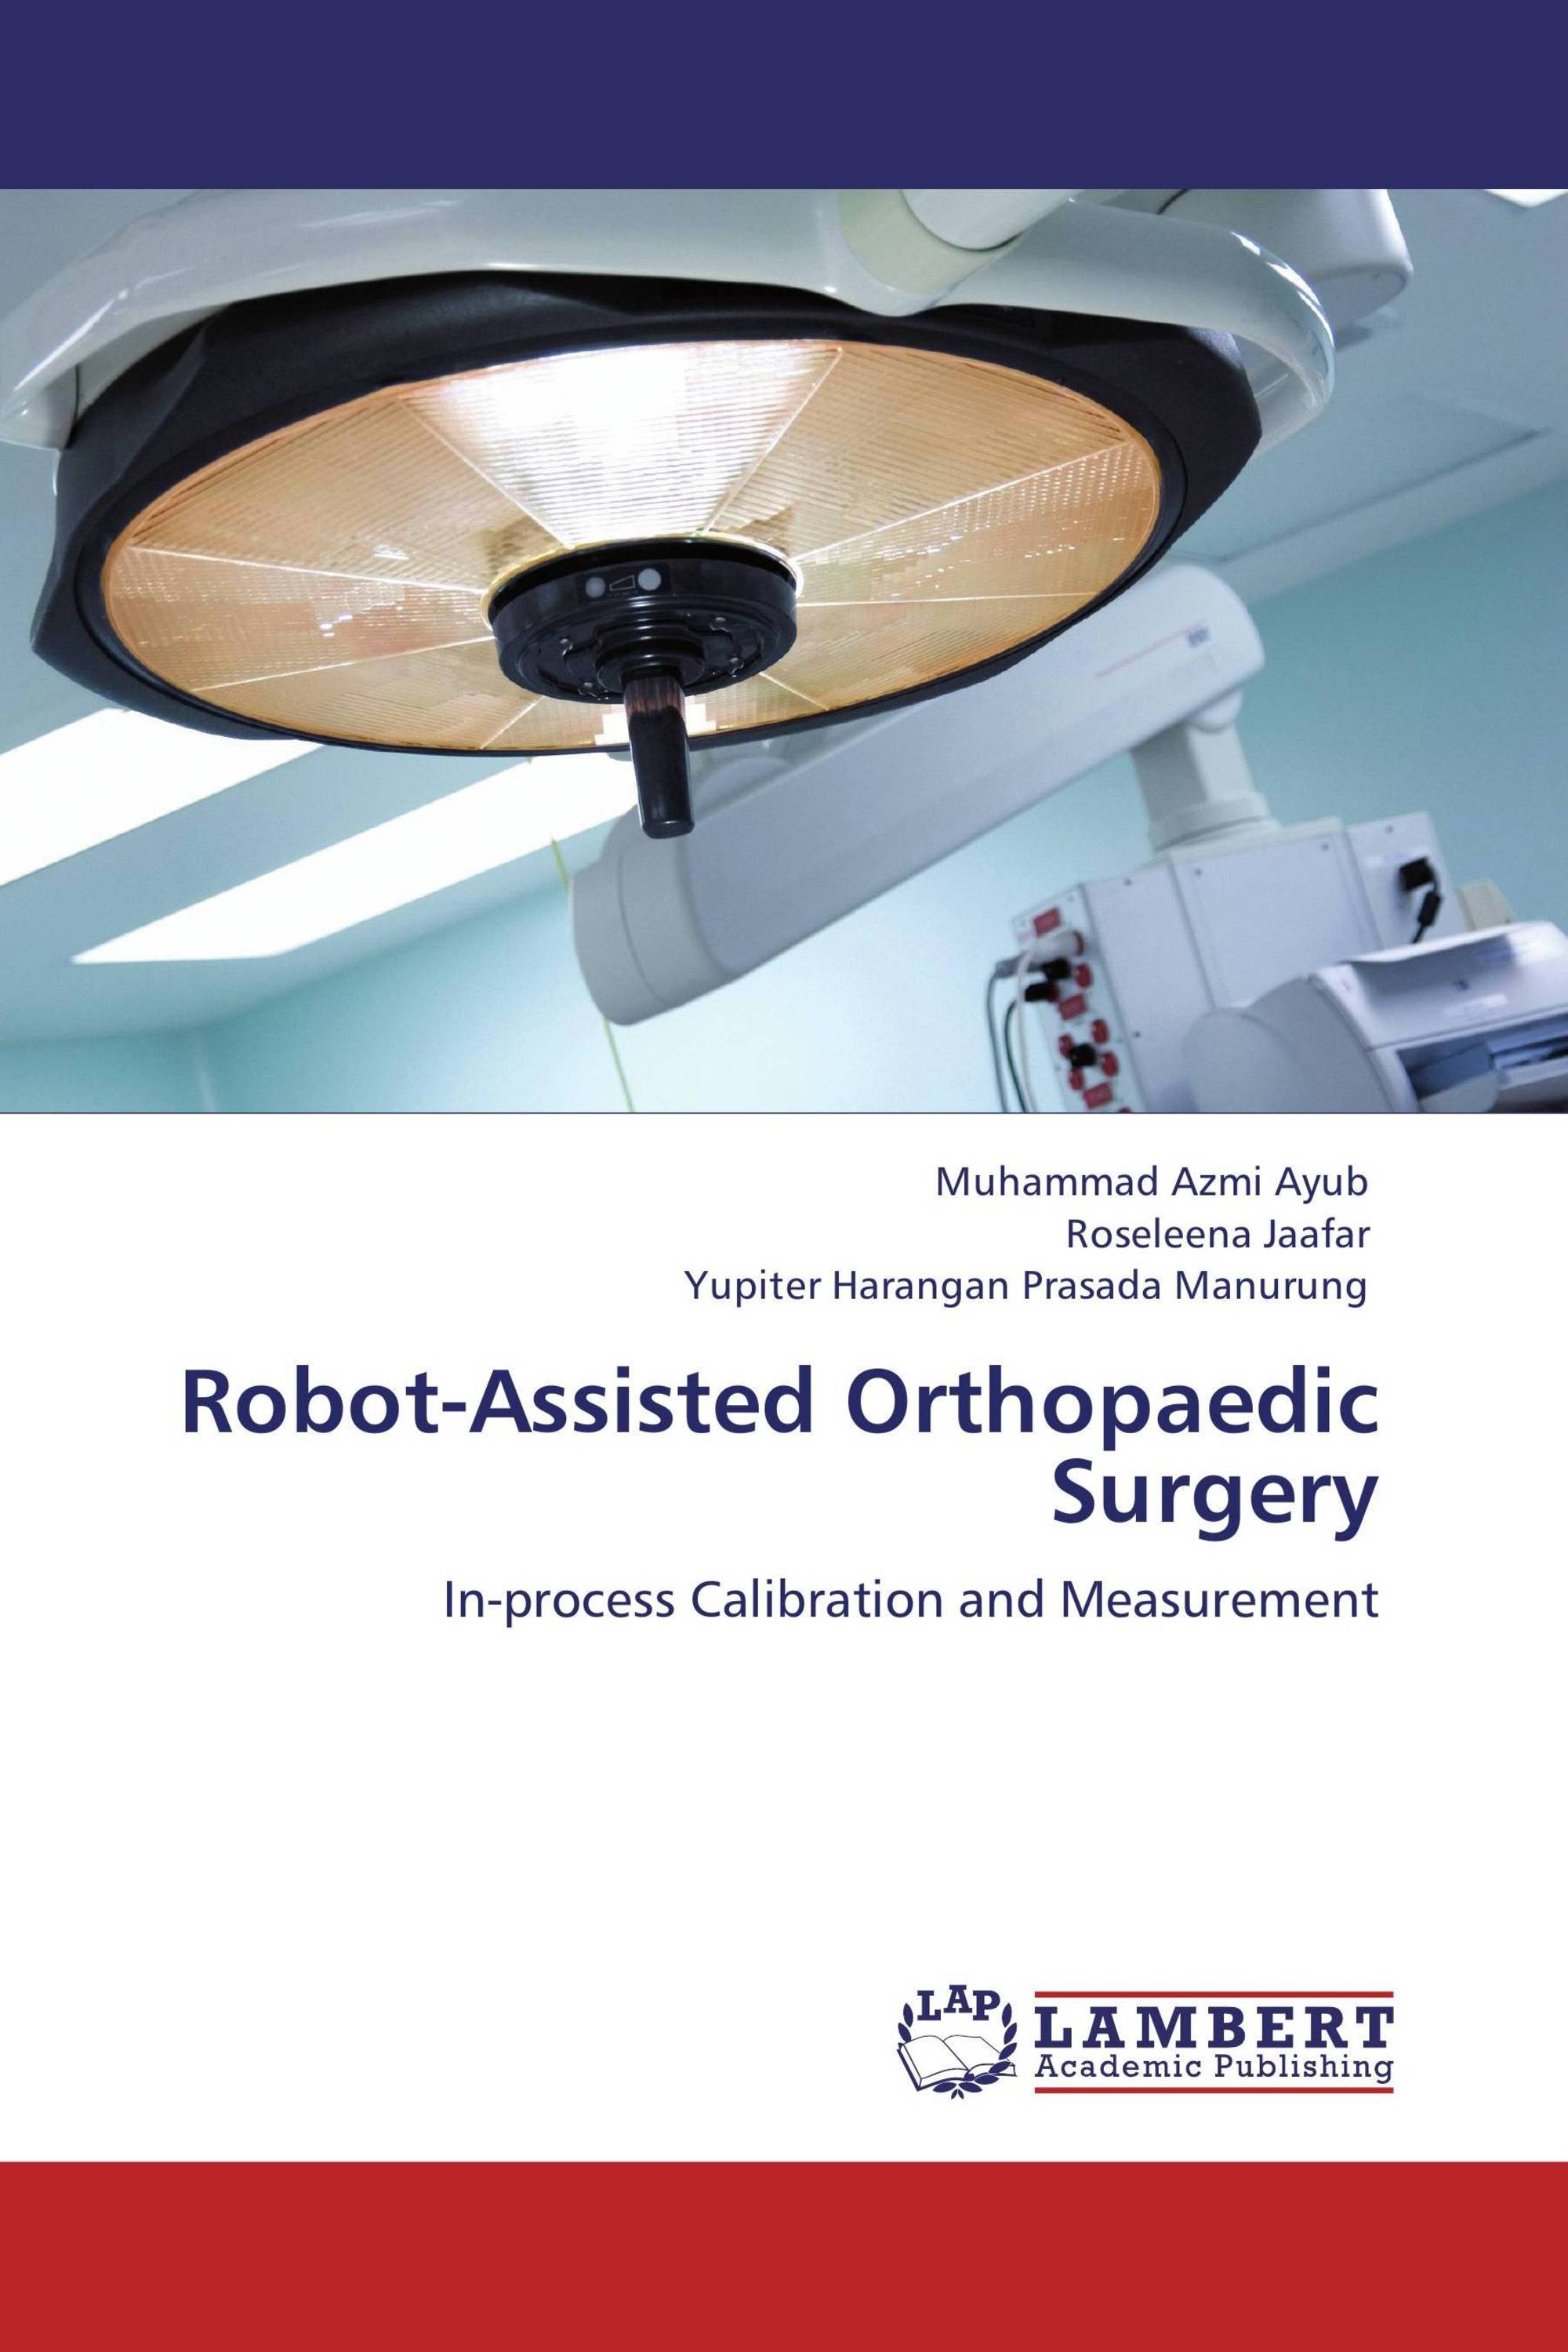 Robot-Assisted Orthopaedic Surgery